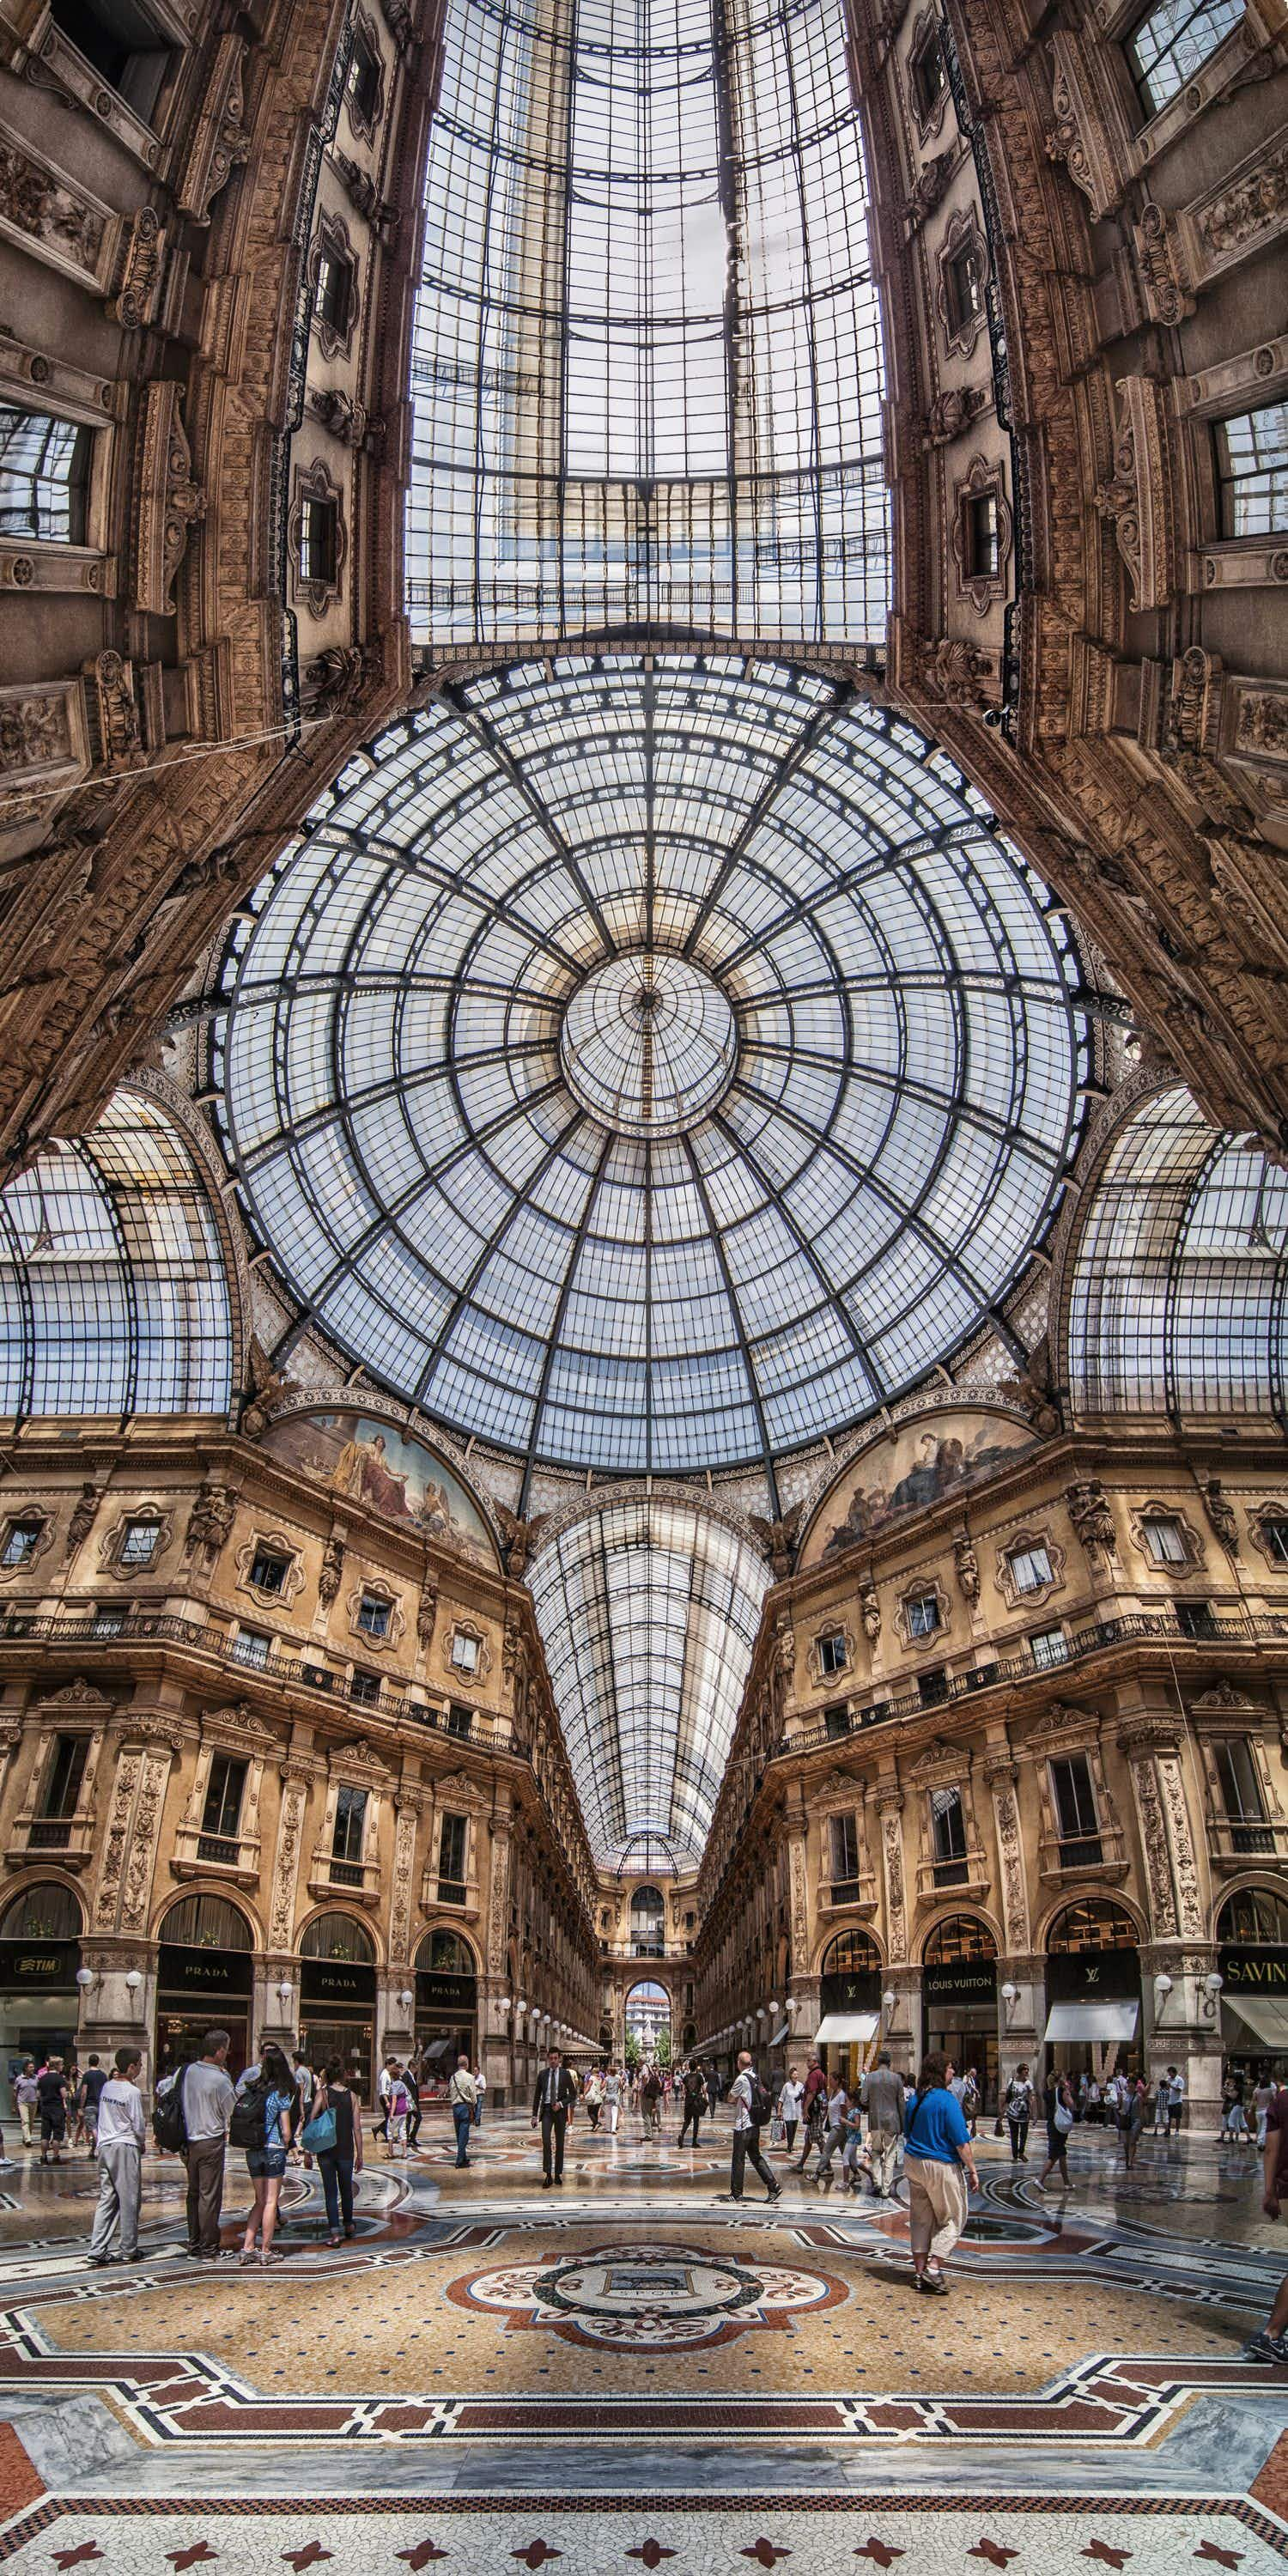 This panoramic photo technique captures the full breadth of Italy's incredible architecture